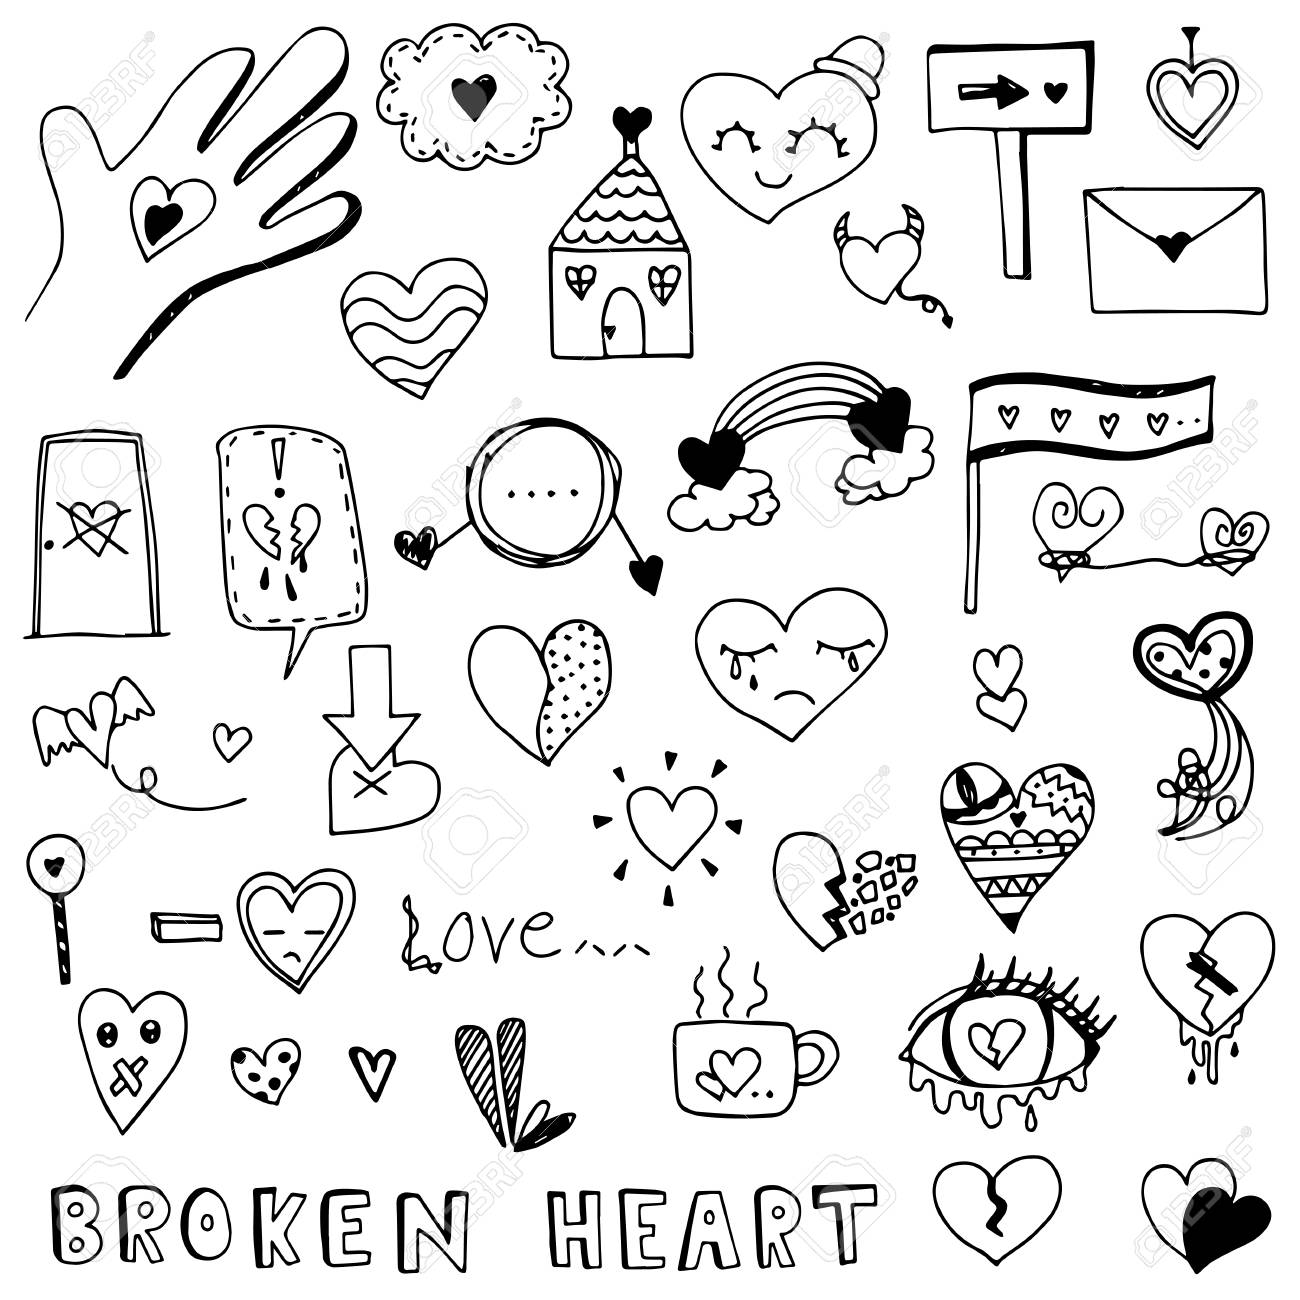 Broken Heart And Love Heart Doodle Vector Set Royalty Free Cliparts Vectors And Stock Illustration Image 89058046 Search, discover and share your favorite doodle hearts gifs. broken heart and love heart doodle vector set